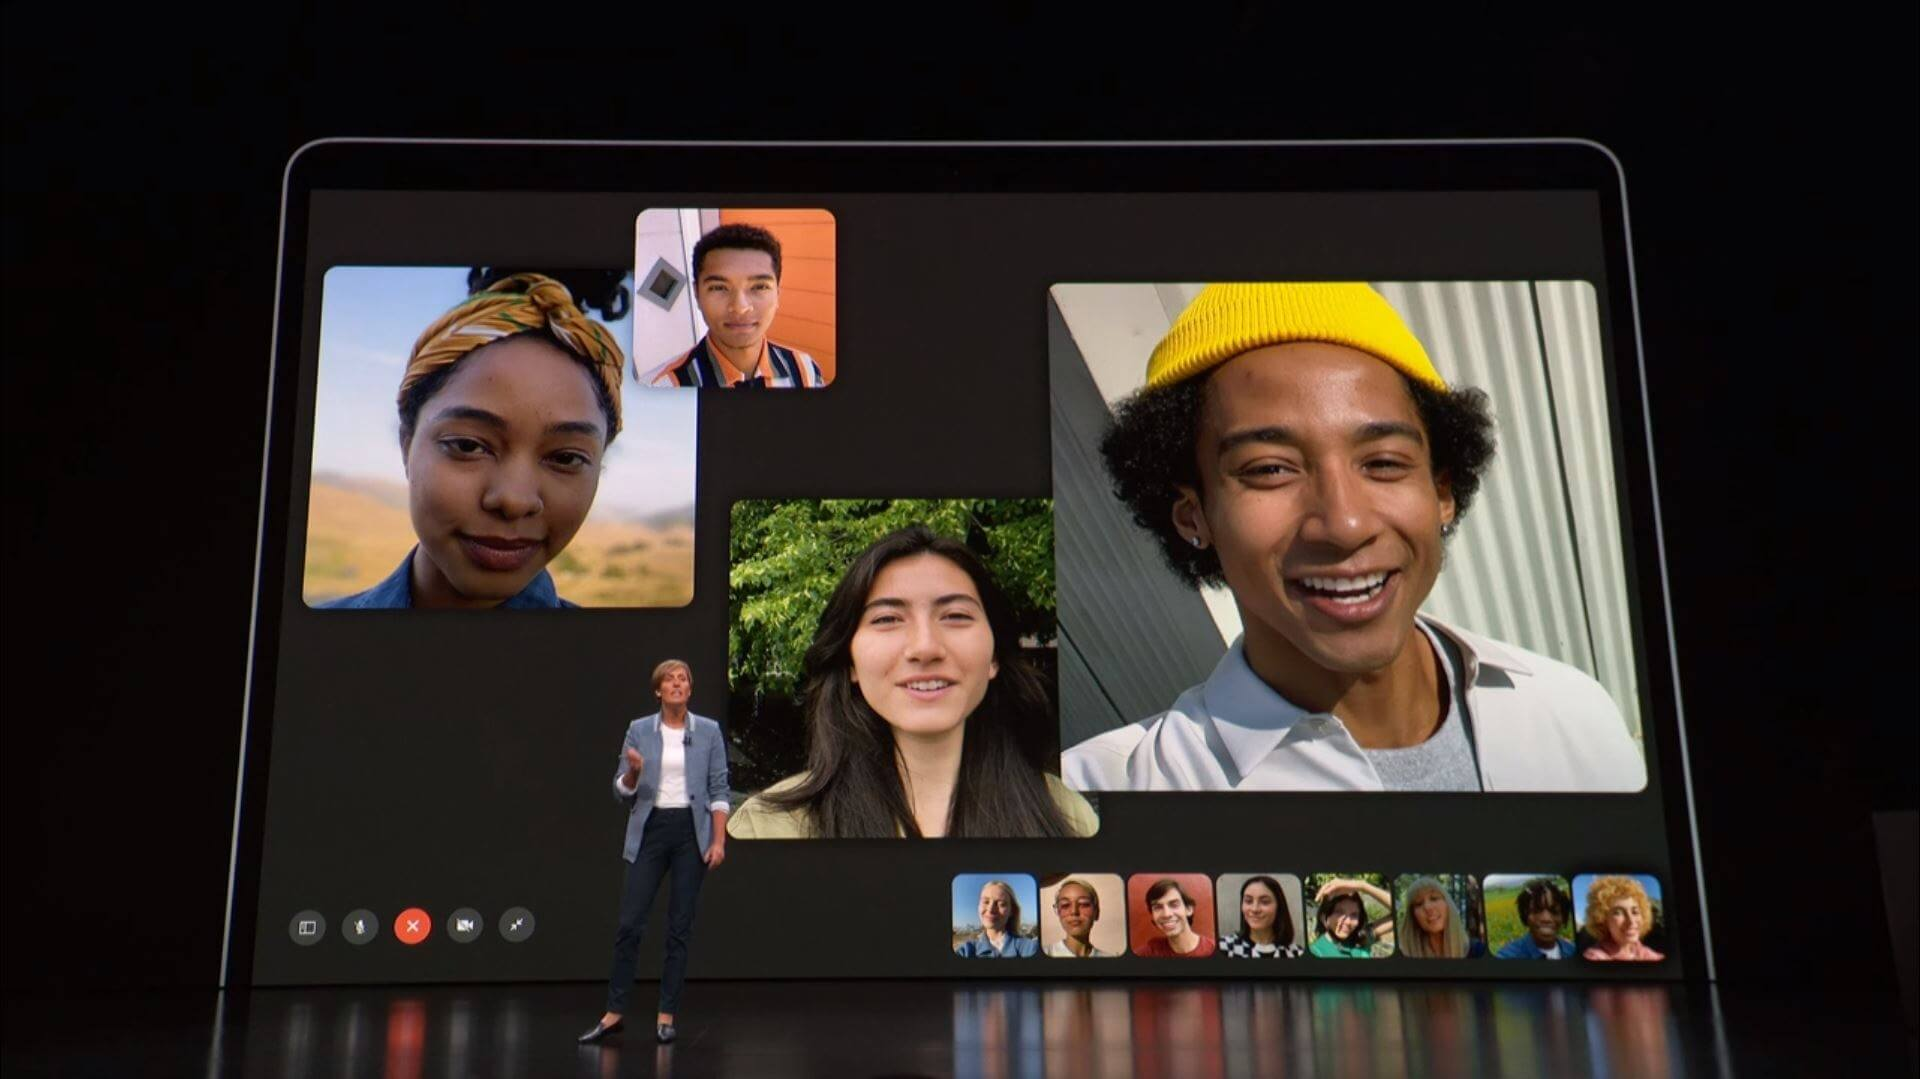 Apple Fixed the FaceTime Flaw, but Questions Remain